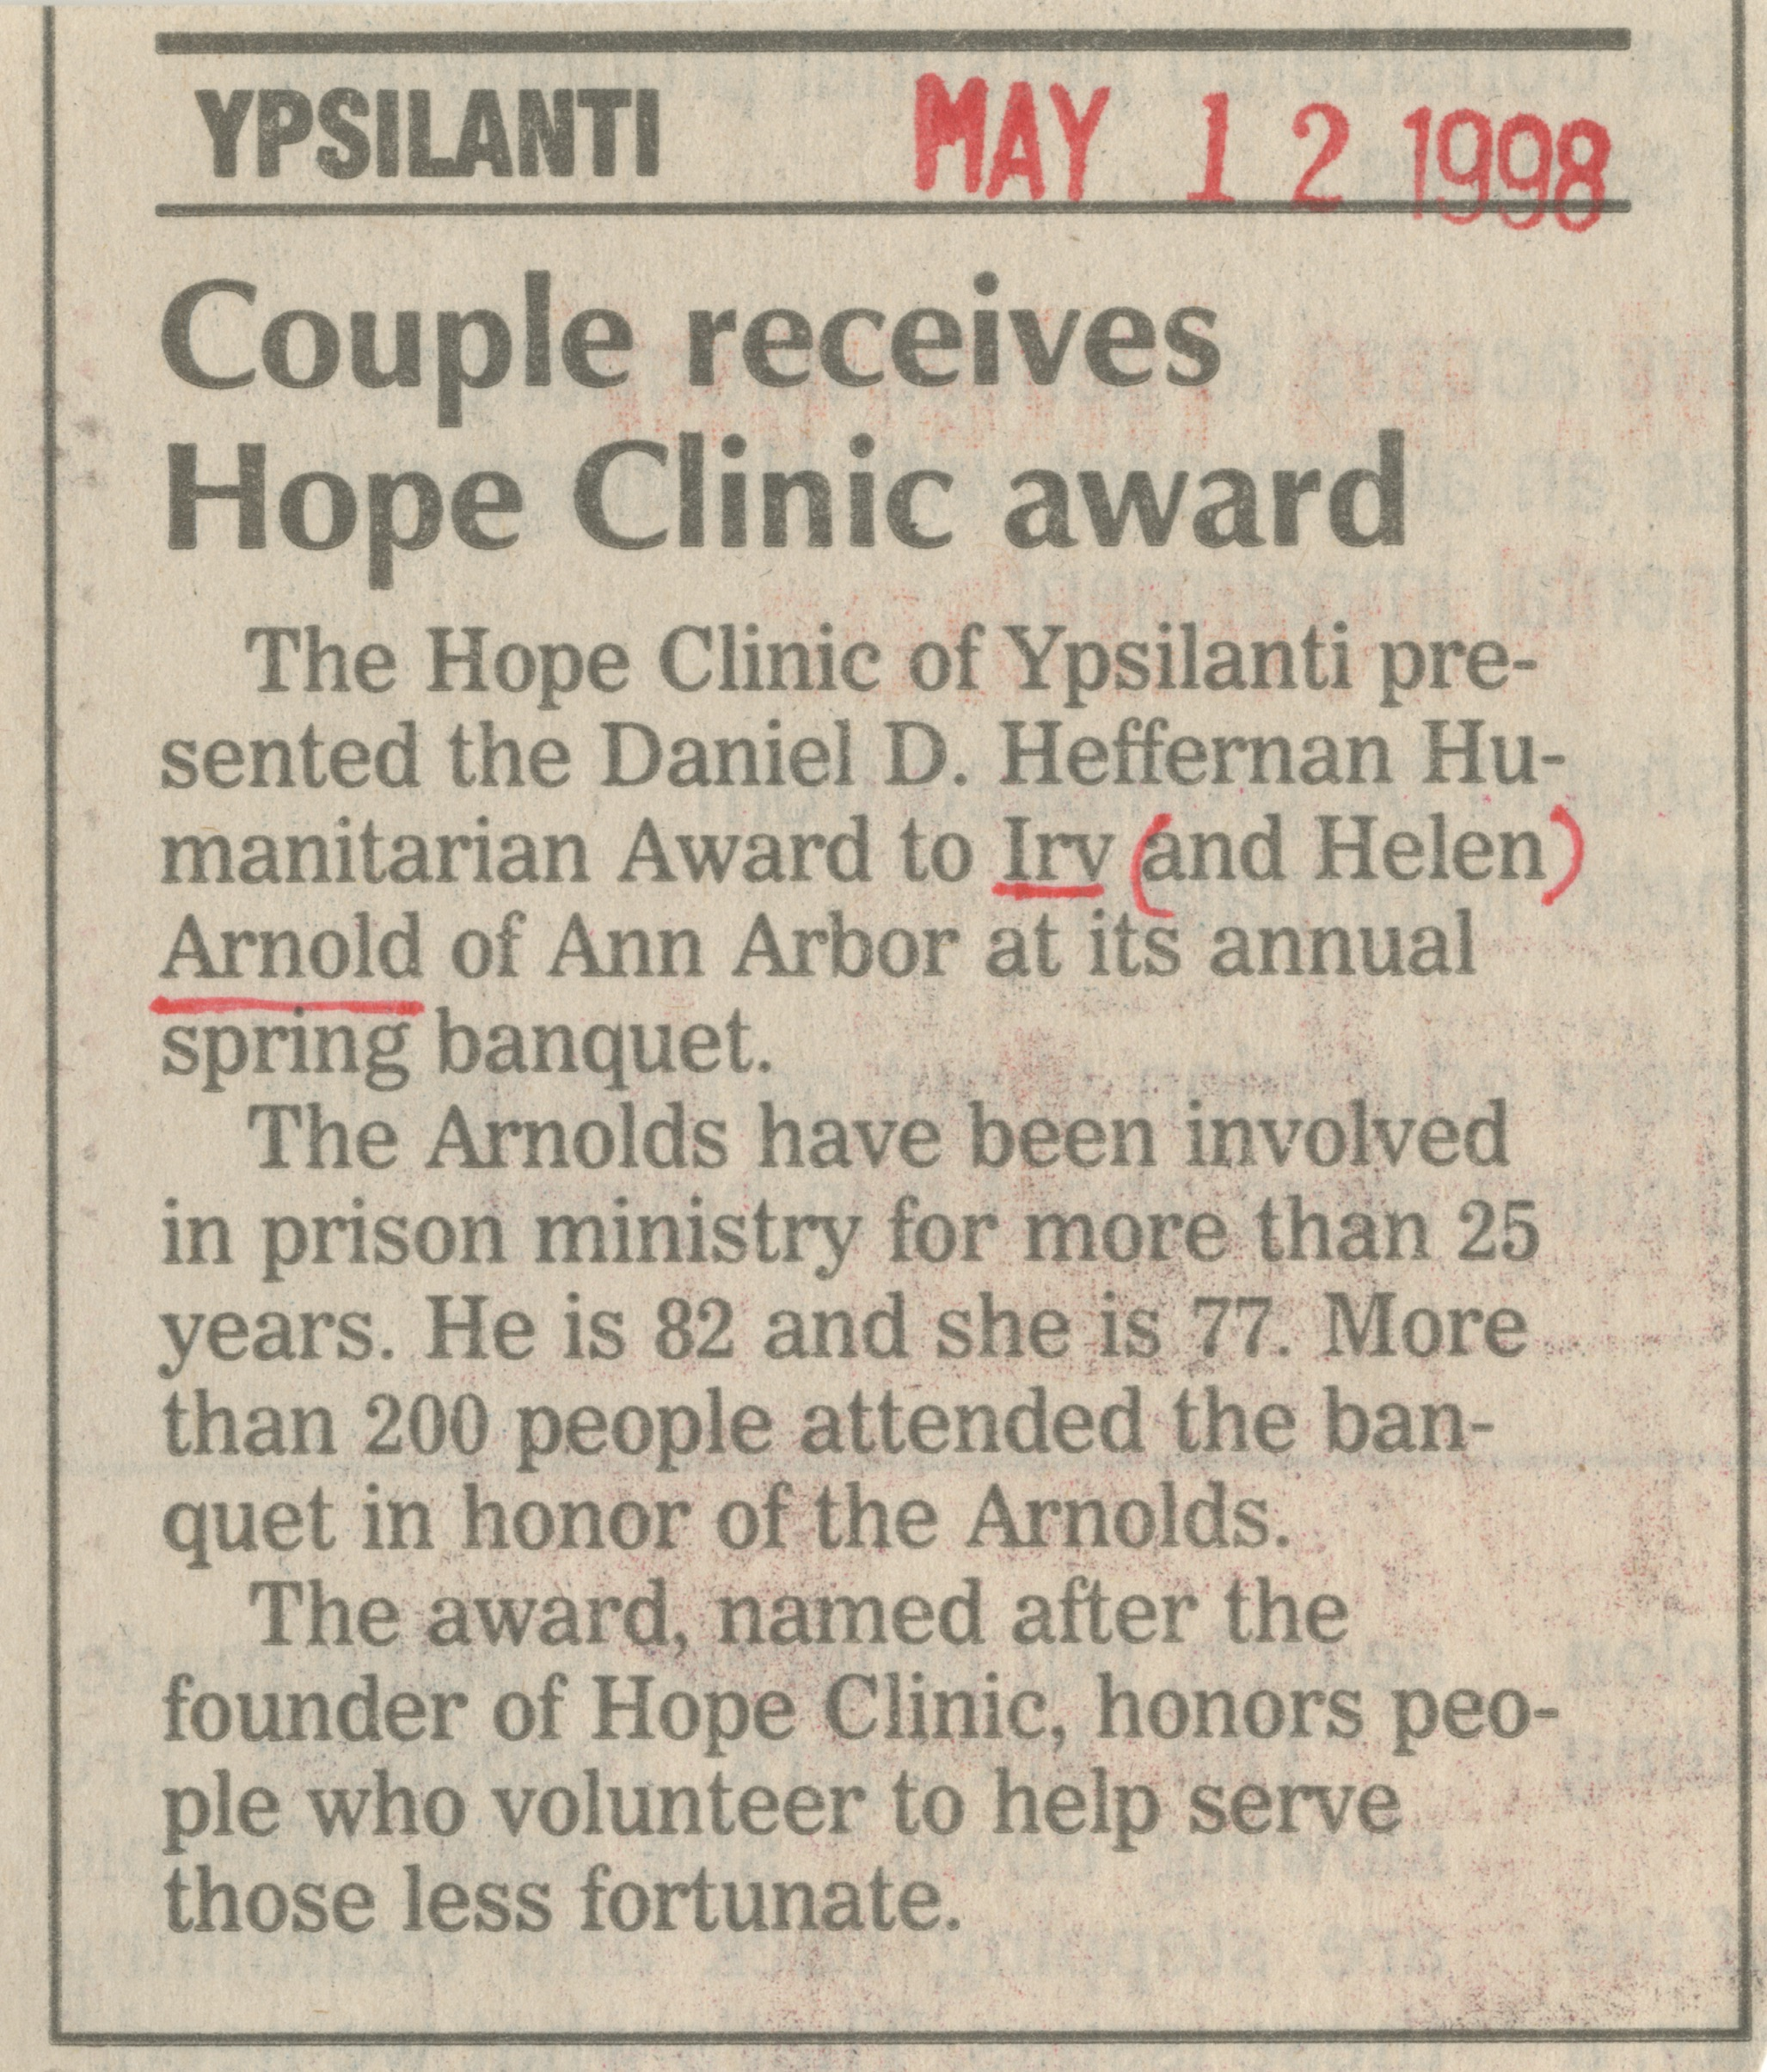 Couple receives Hope Clinic award image